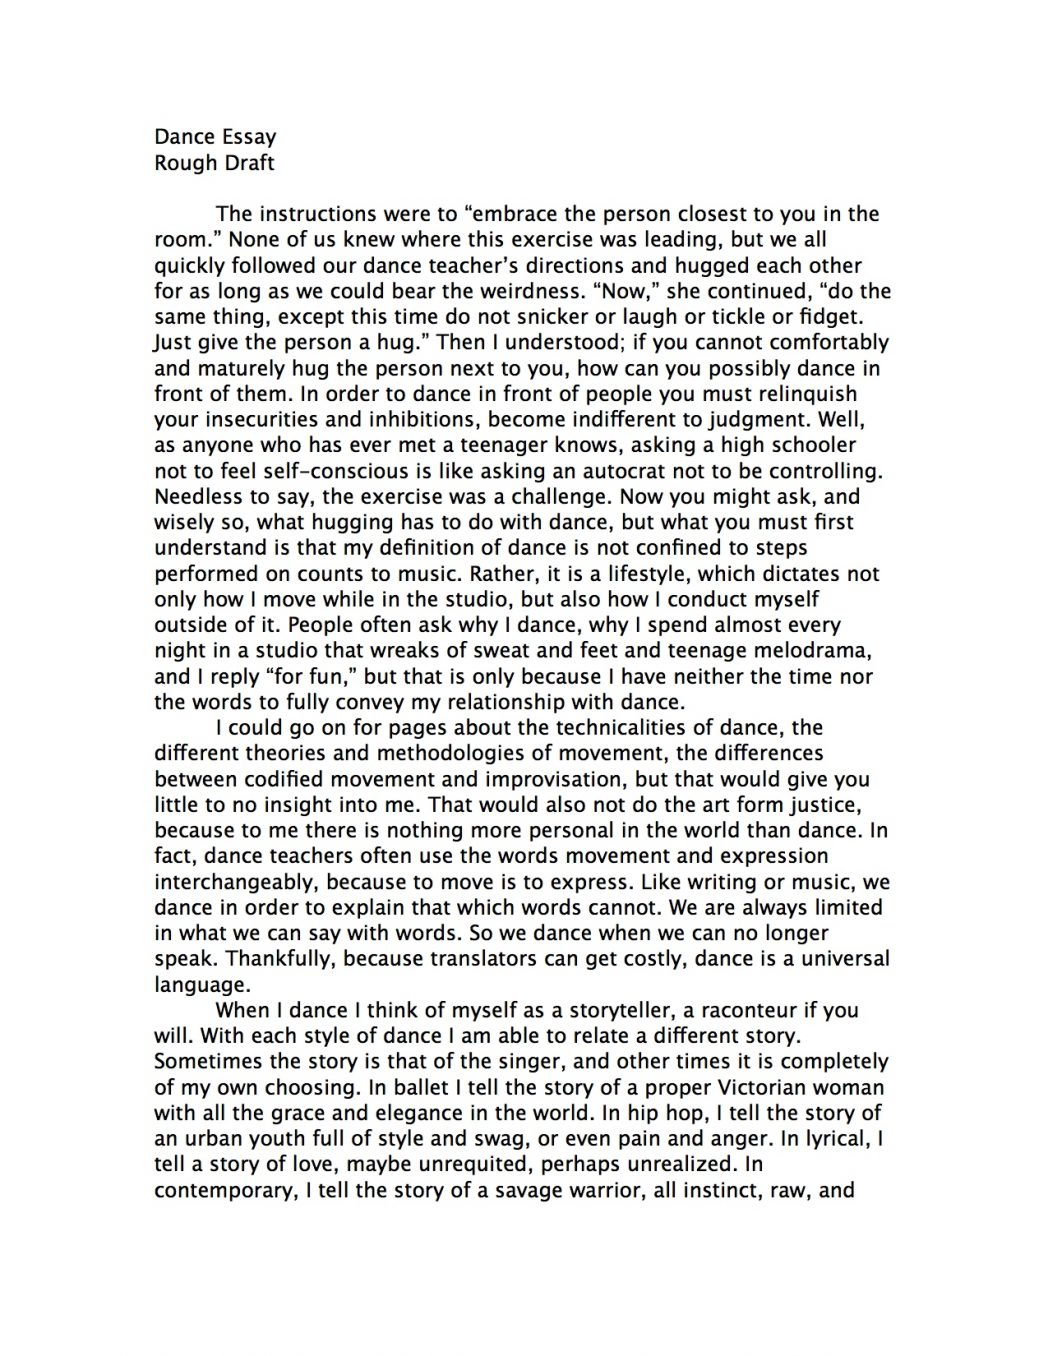 004 How To Start An Essay For College Example Business Entrance Essays Examples About Yourself Rebecca Nueman Dance Writing Scholarship Prompt Your Background With Stupendous Write Autobiography Scholarships Full